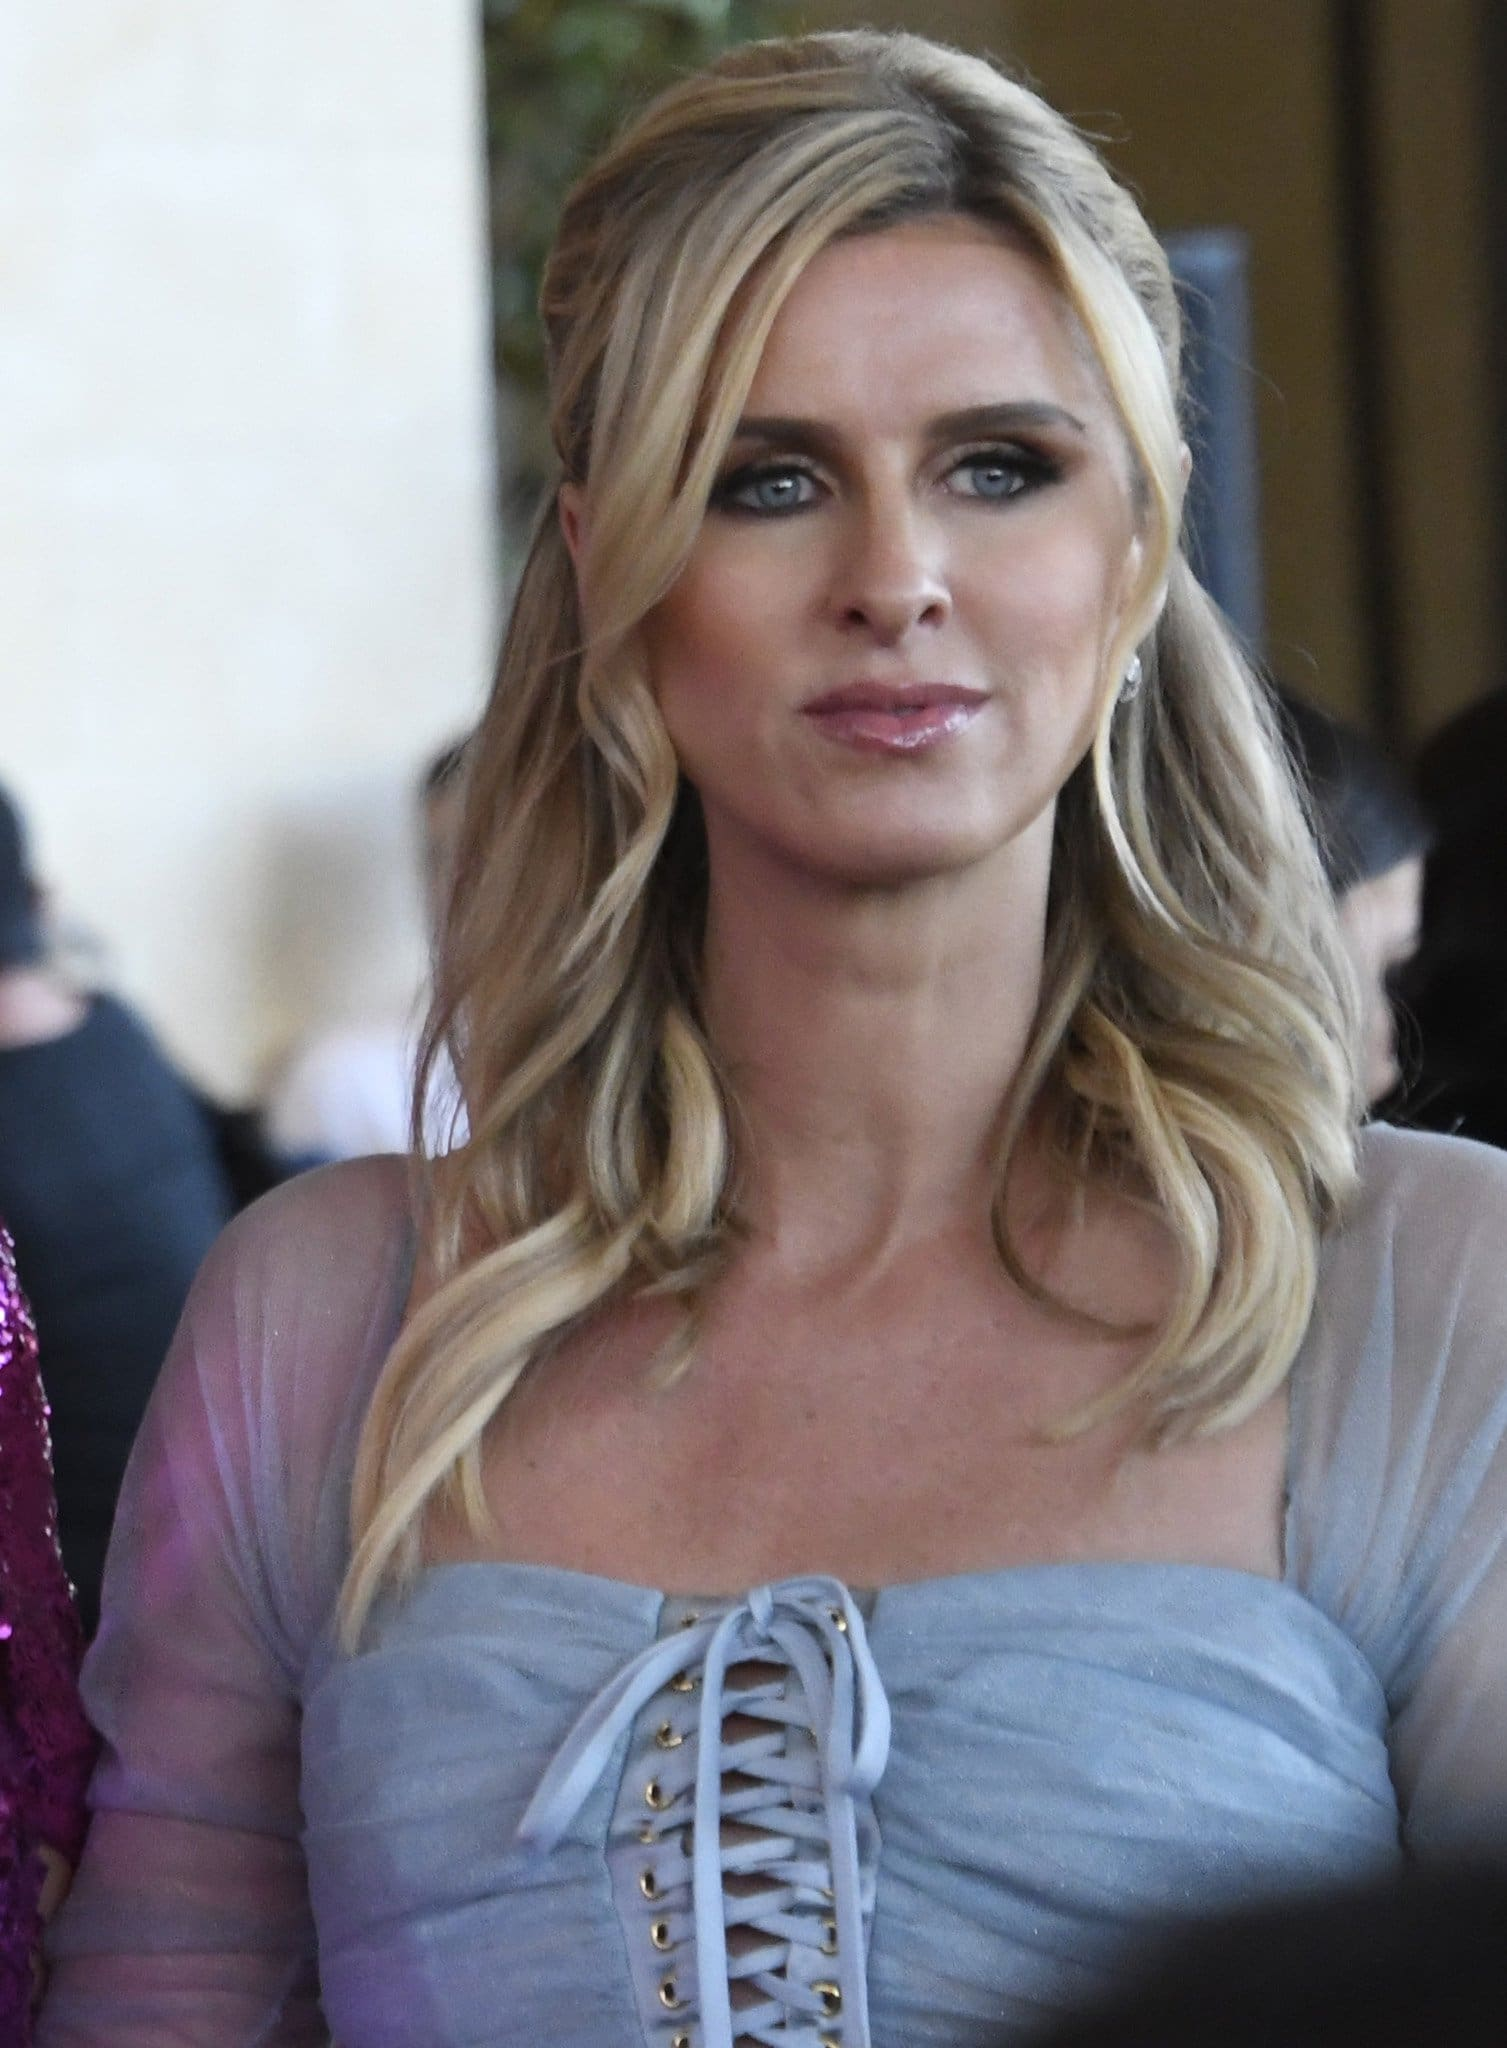 Nicky Hilton goes for a royal look with half-up soft curls and smokey eyeshadow